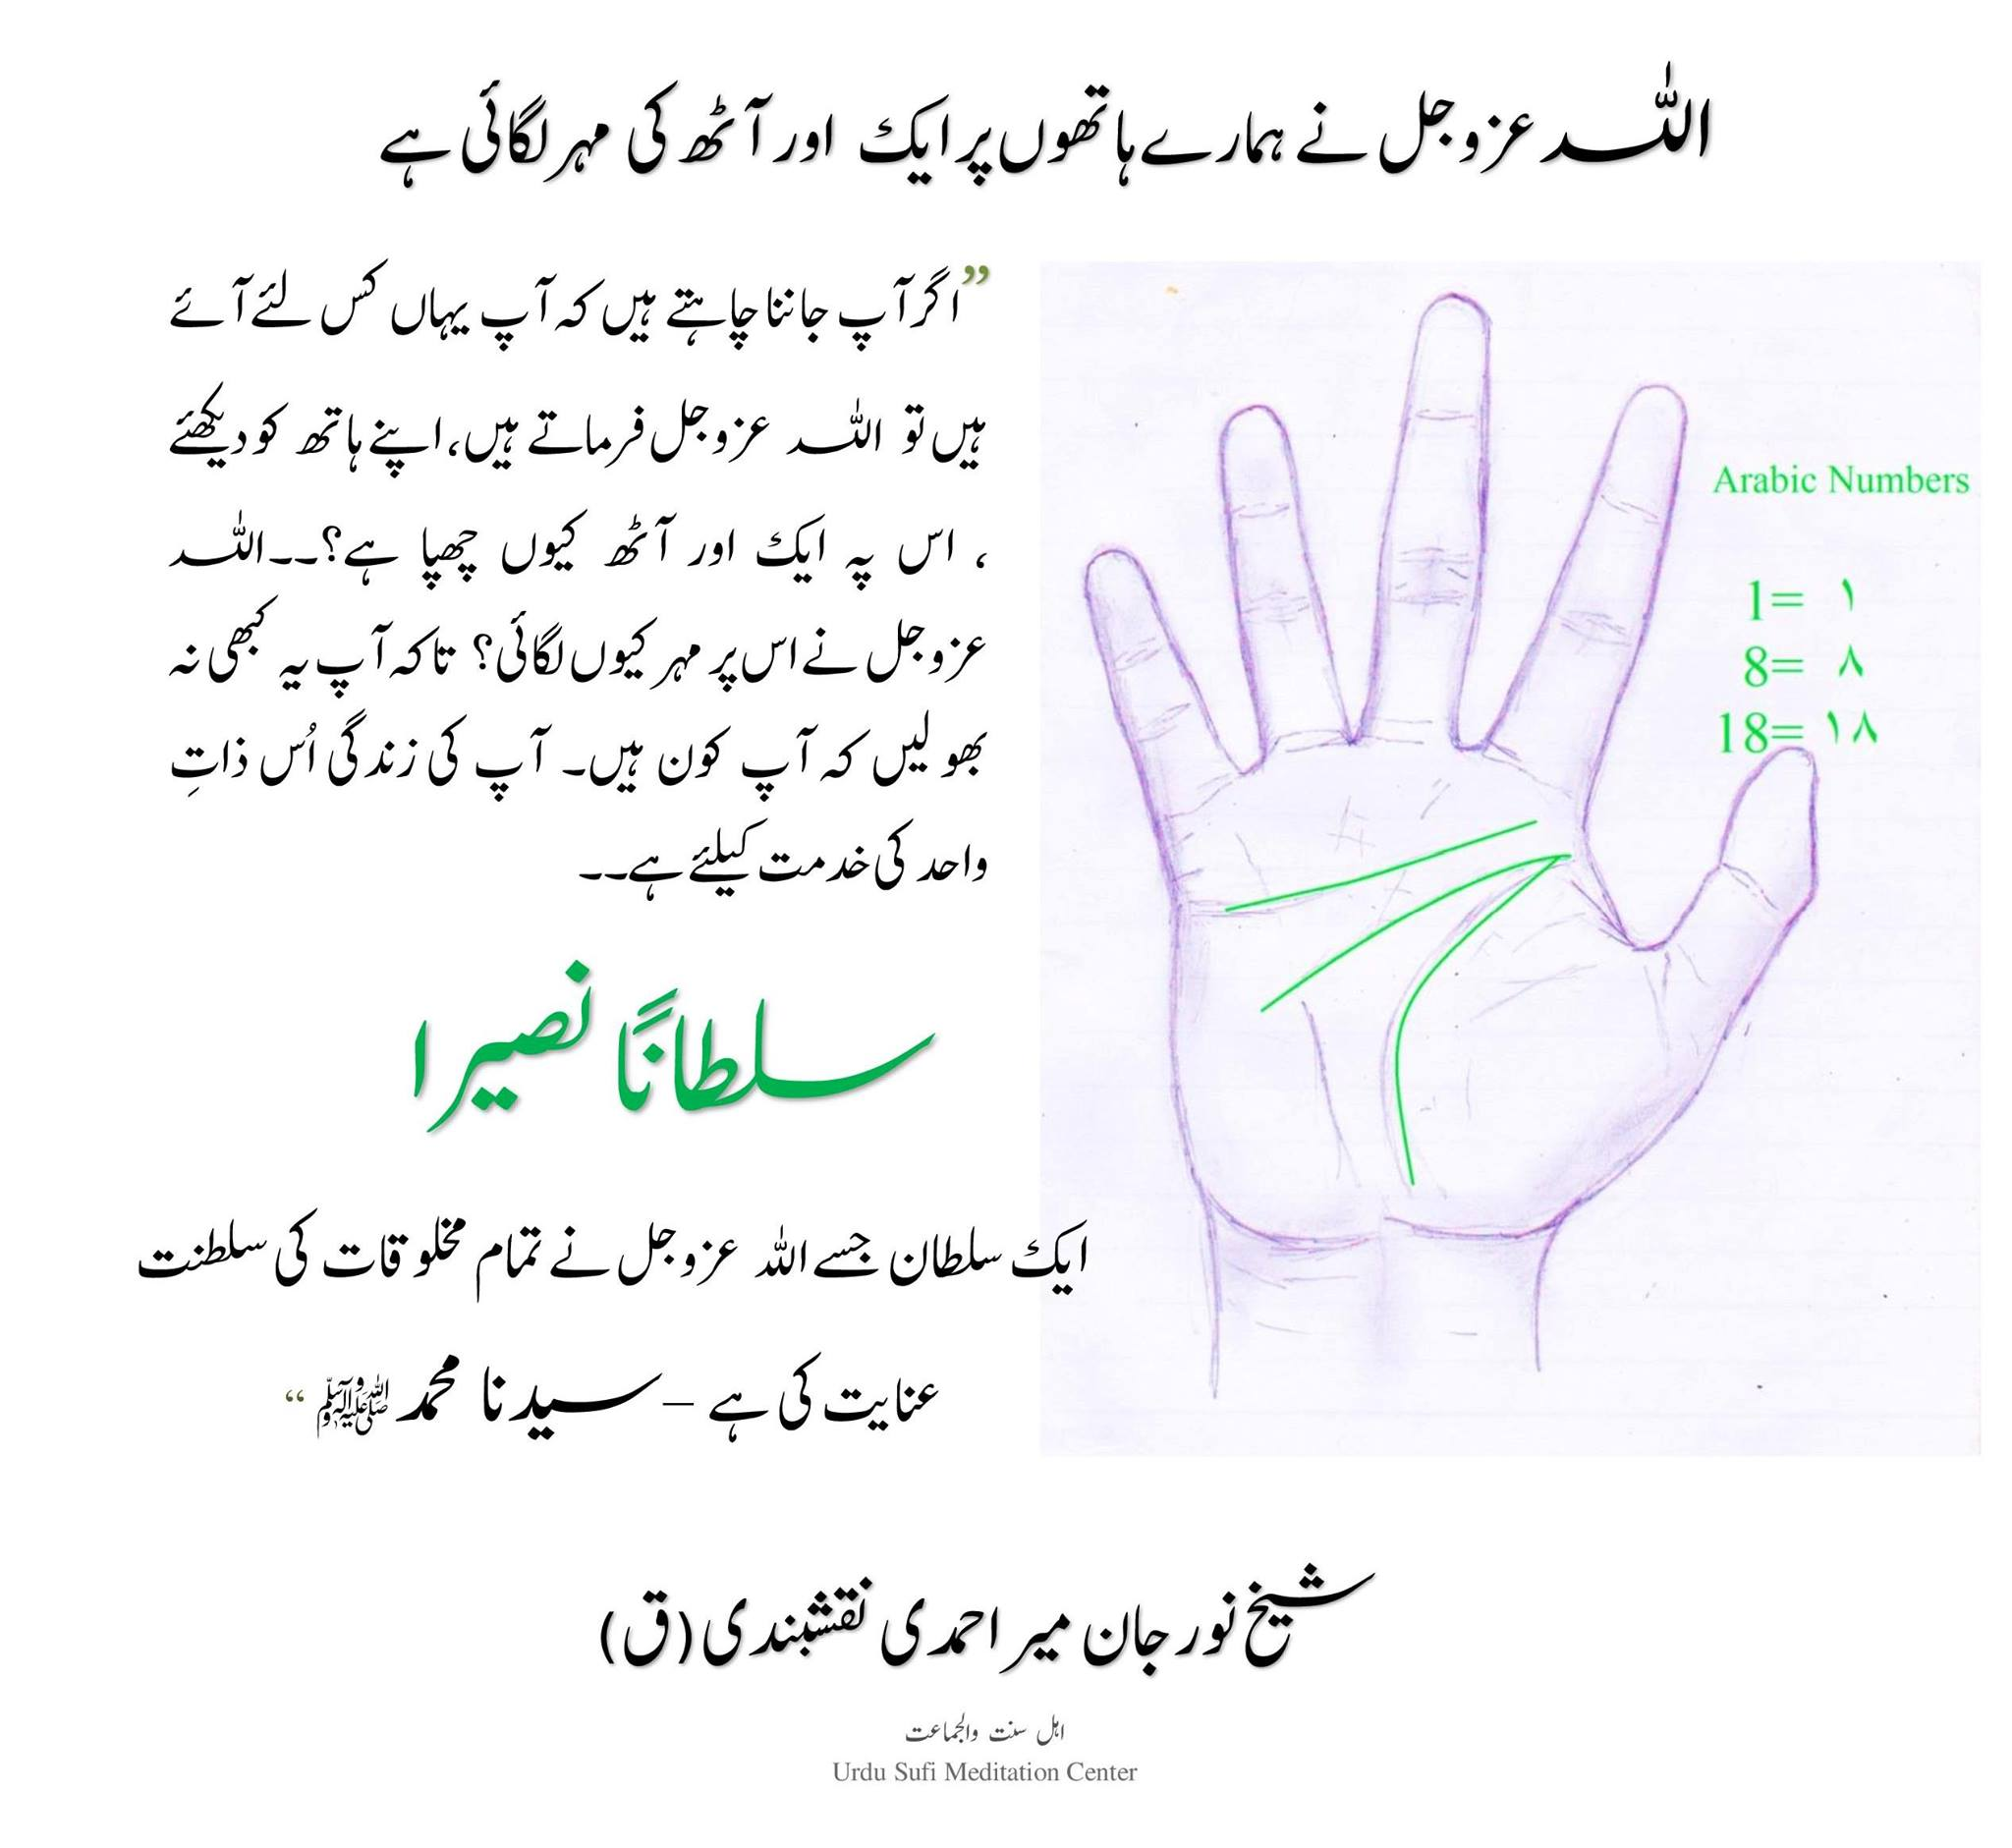 Allah (AJ) Has Stamped Our Hands with 1 & 8  –Our Purpose is to Serve the Sultan...